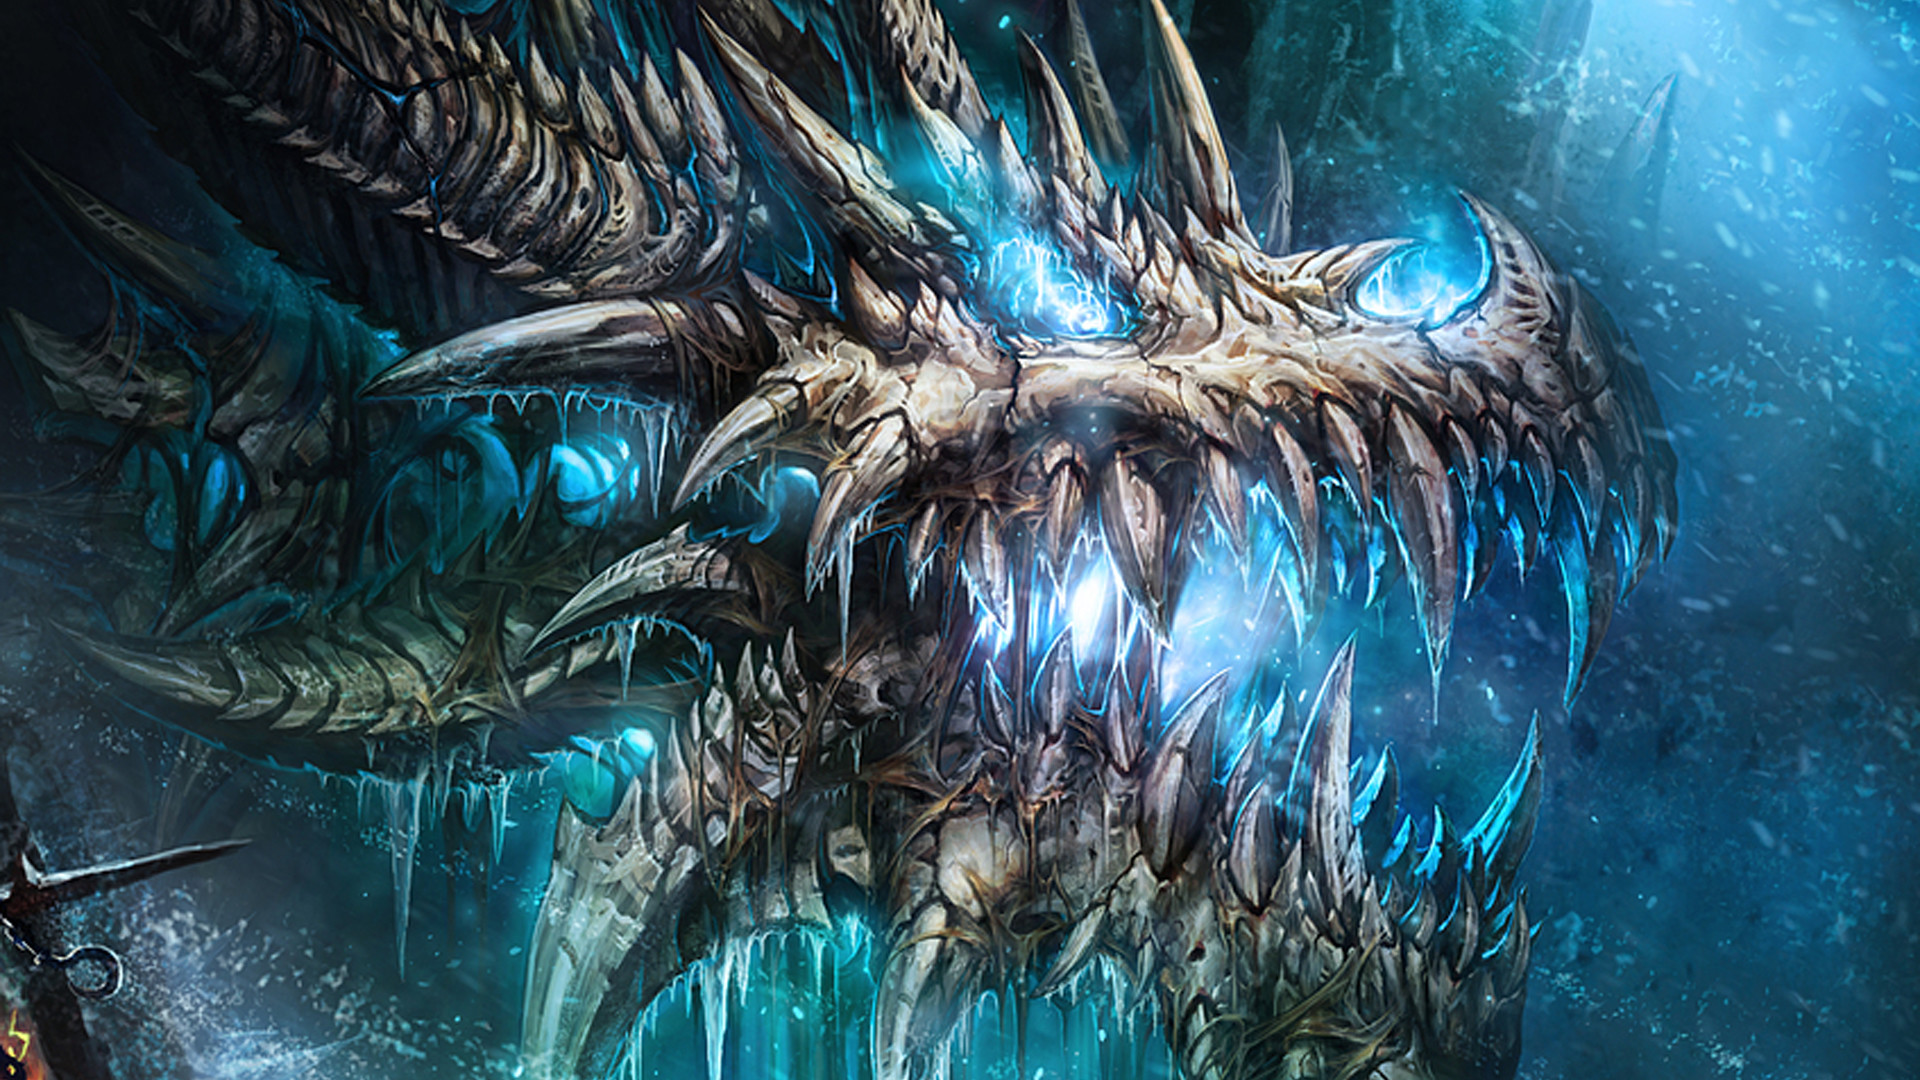 Cool blue dragon wallpaper wallpapertag - Dragon backgrounds 1920x1080 ...